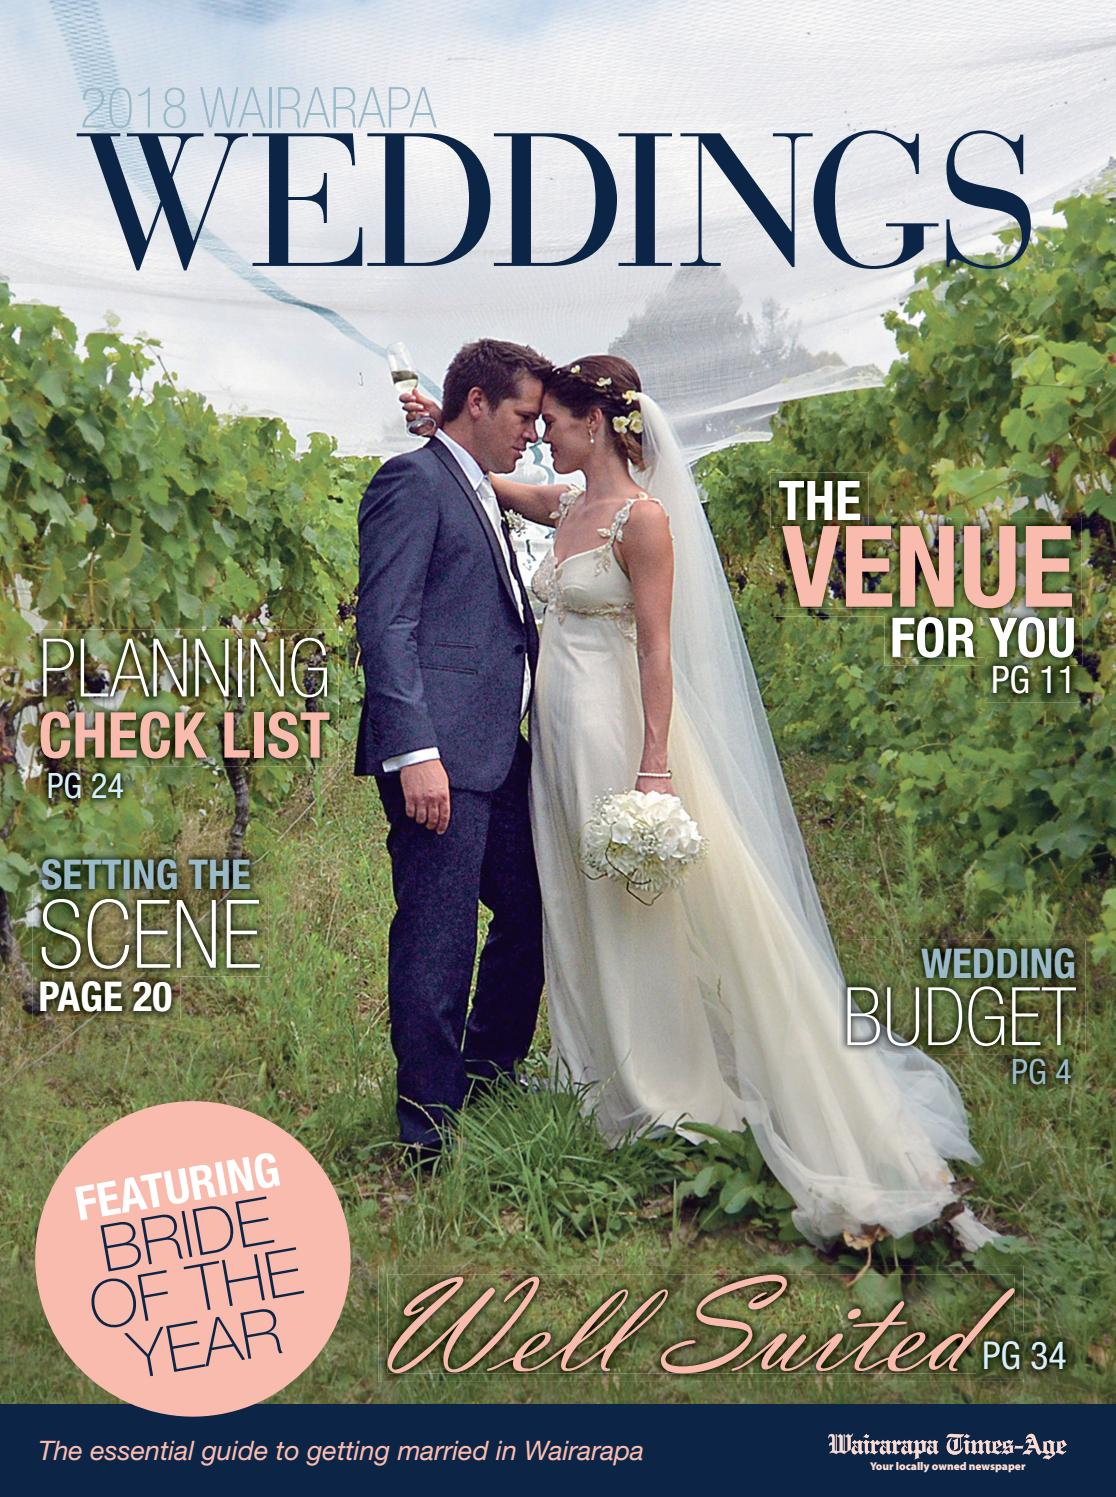 ca9d5c00c Wairarapa Weddings 2018 by Wairarapa Times-Age - issuu